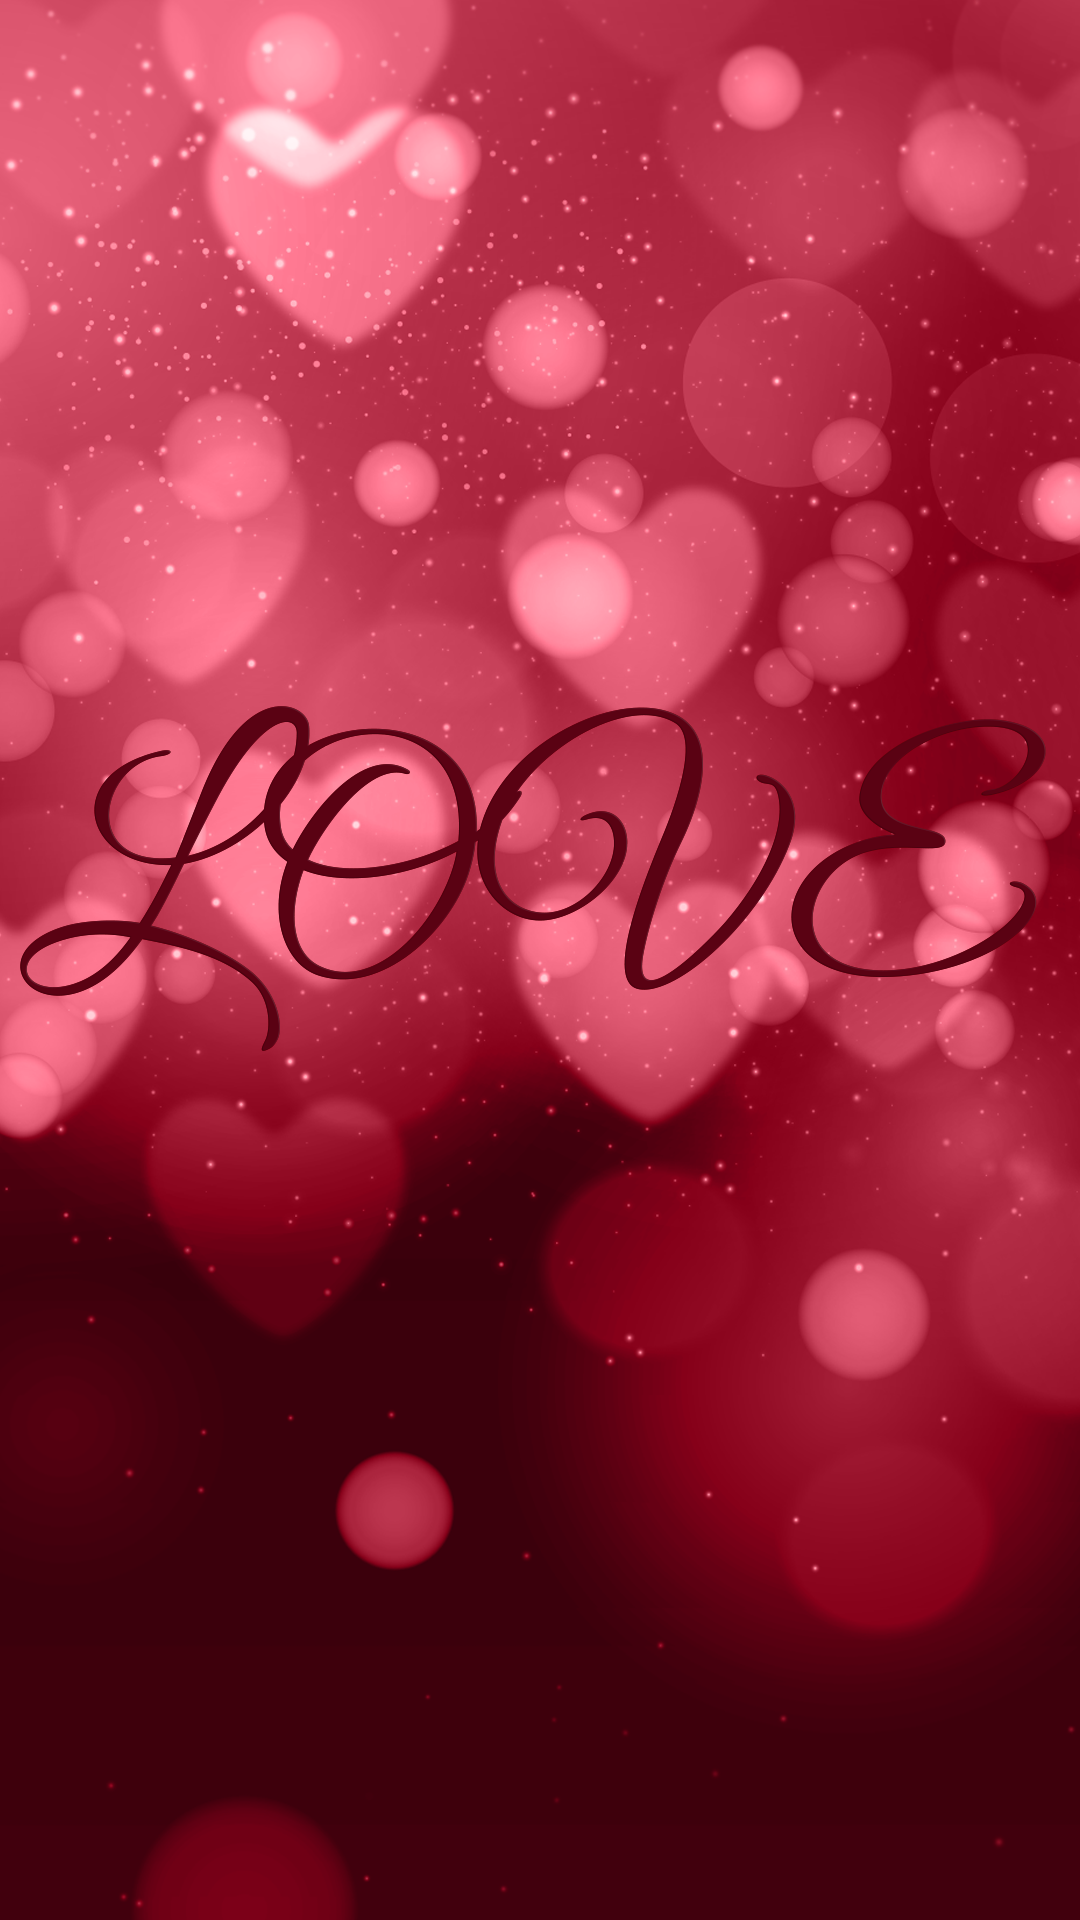 Android Love Phone Wallpapers Hd 1080x1920 Download Hd Wallpaper Wallpapertip Here is a sweet hd wallpaper for android of a young couple in love. android love phone wallpapers hd